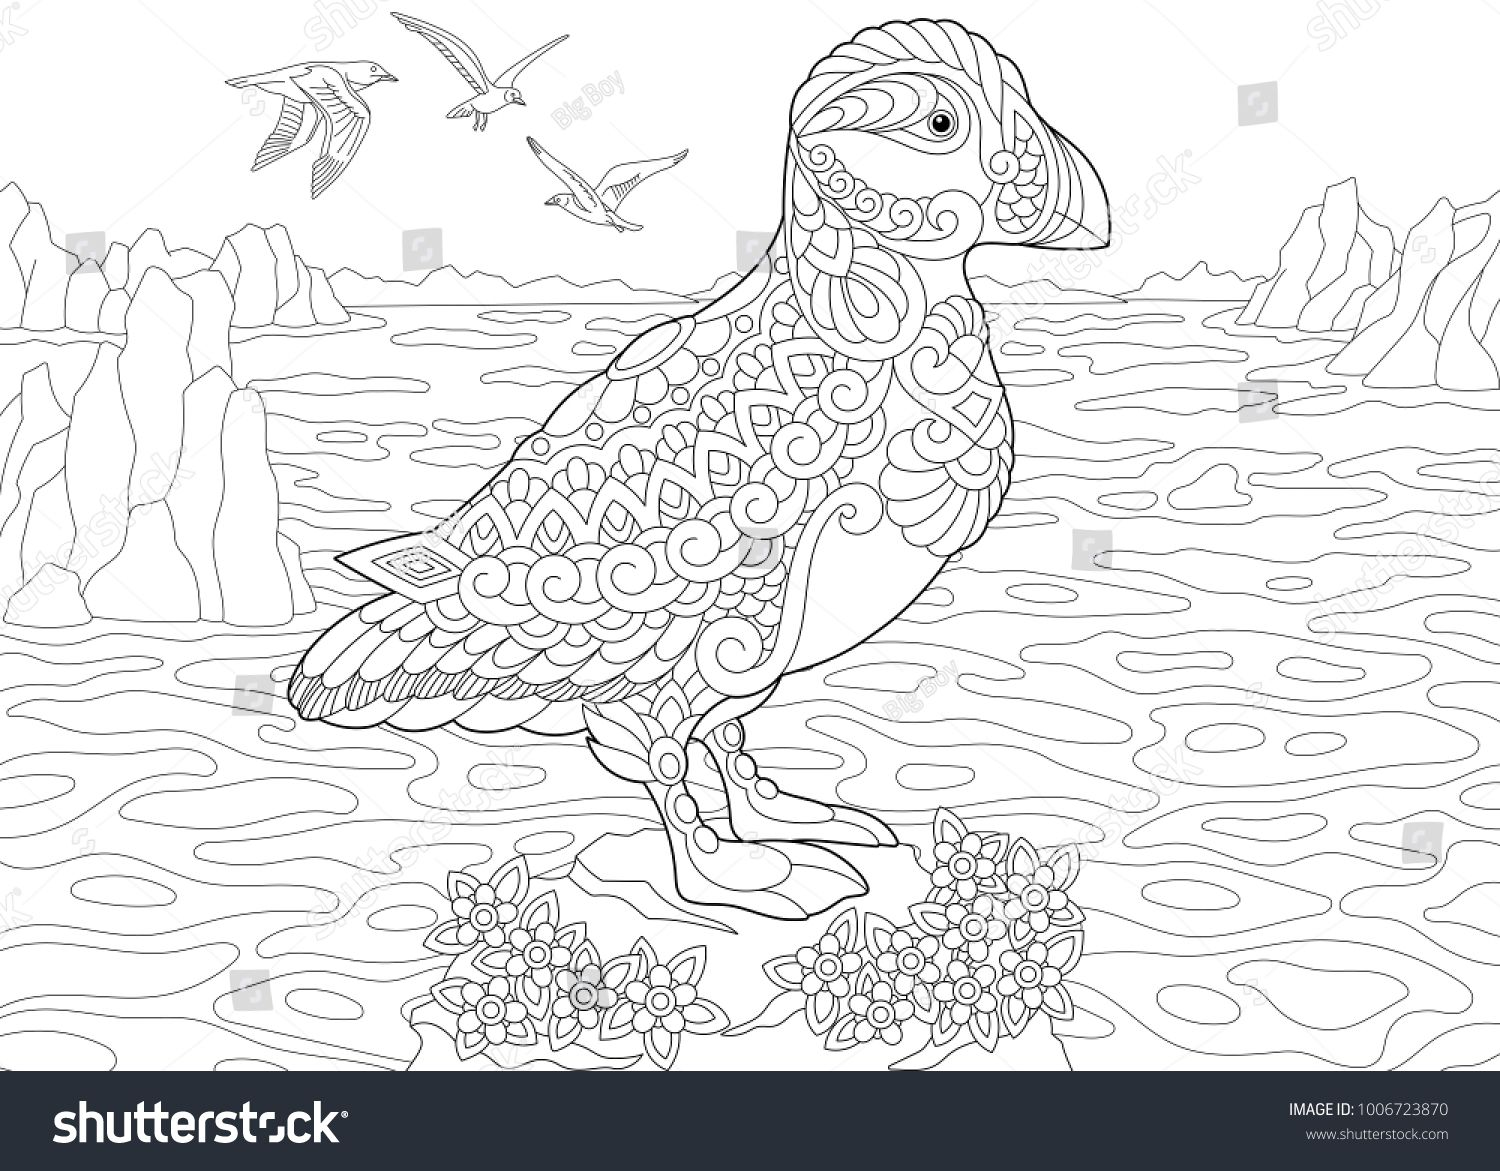 Animal Coloring Page Adult Coloring Book Puffin A Hole Nesting